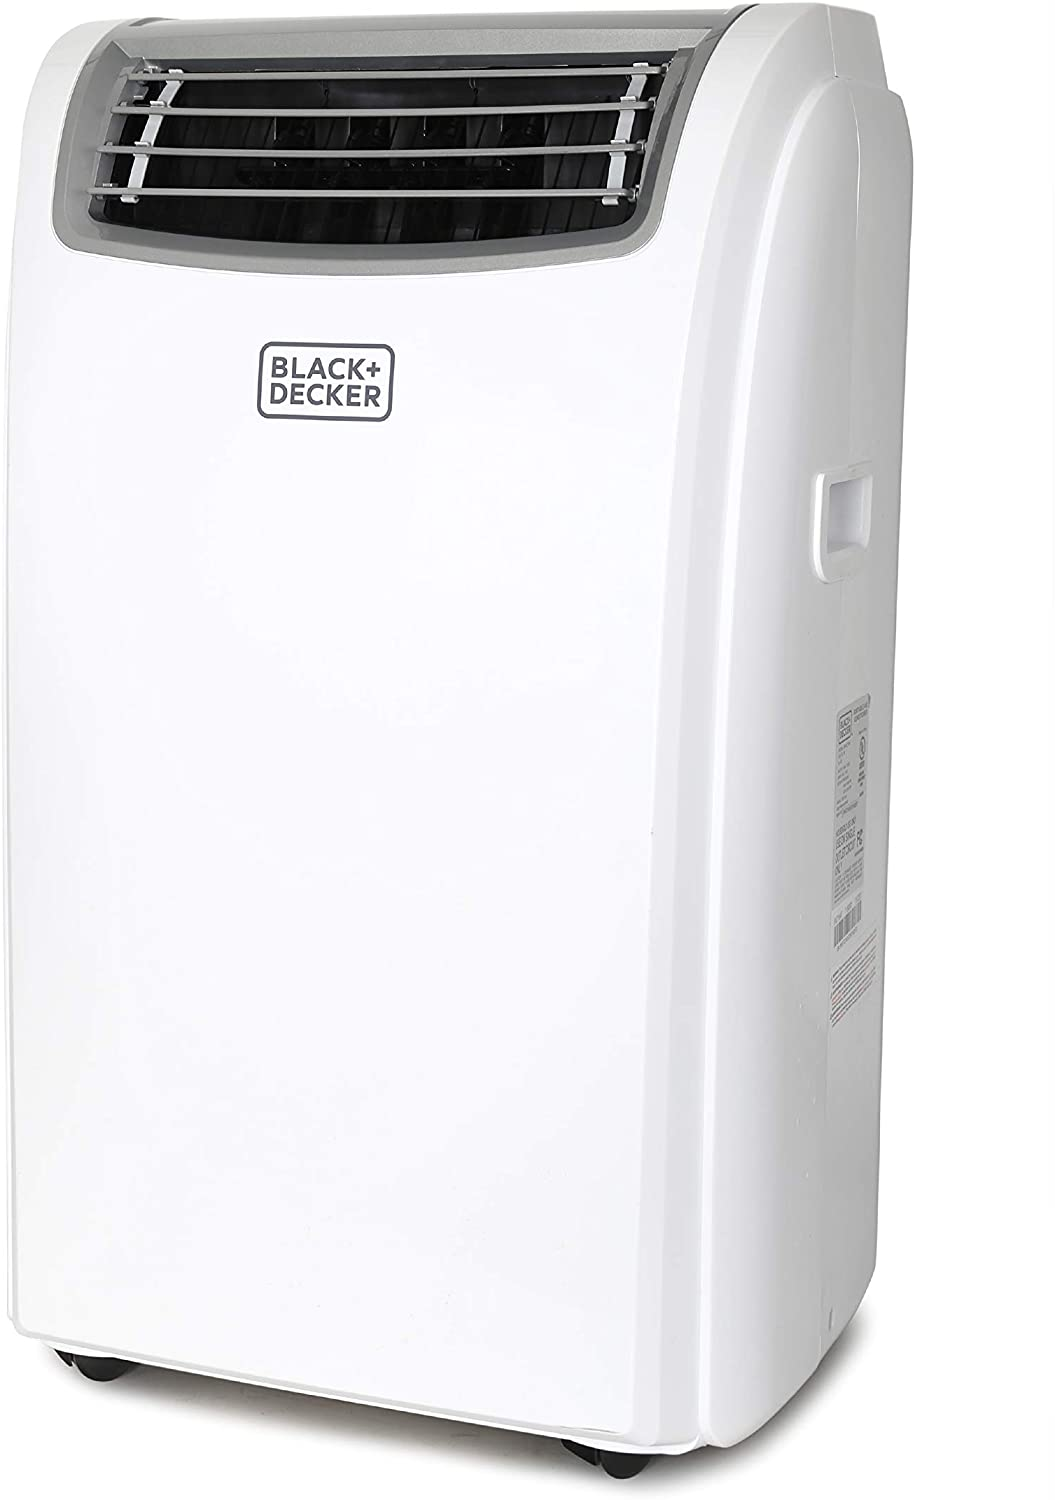 Best 8000 BTU Portable Air Conditioner